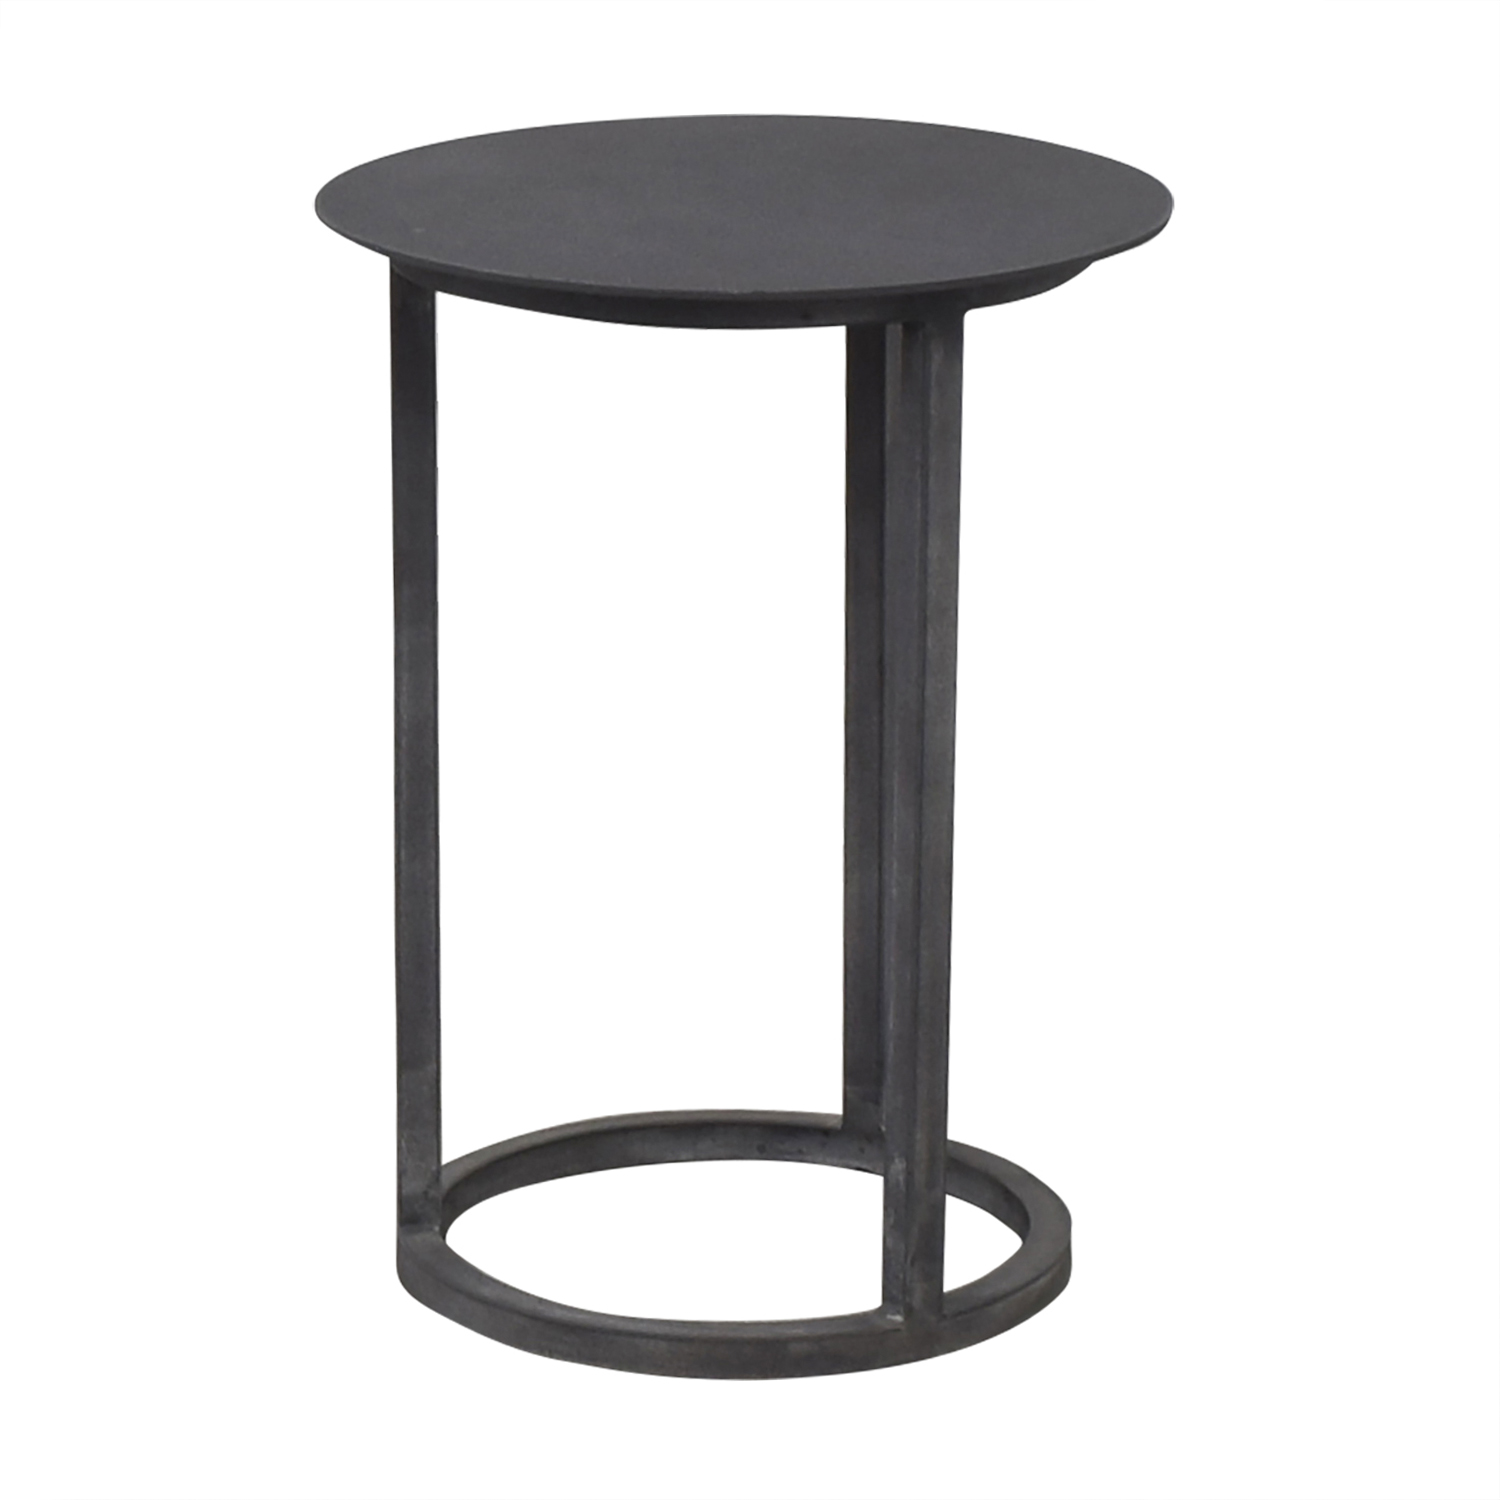 59 Off Restoration Hardware Restoration Hardware Mercer Round Side Table Tables